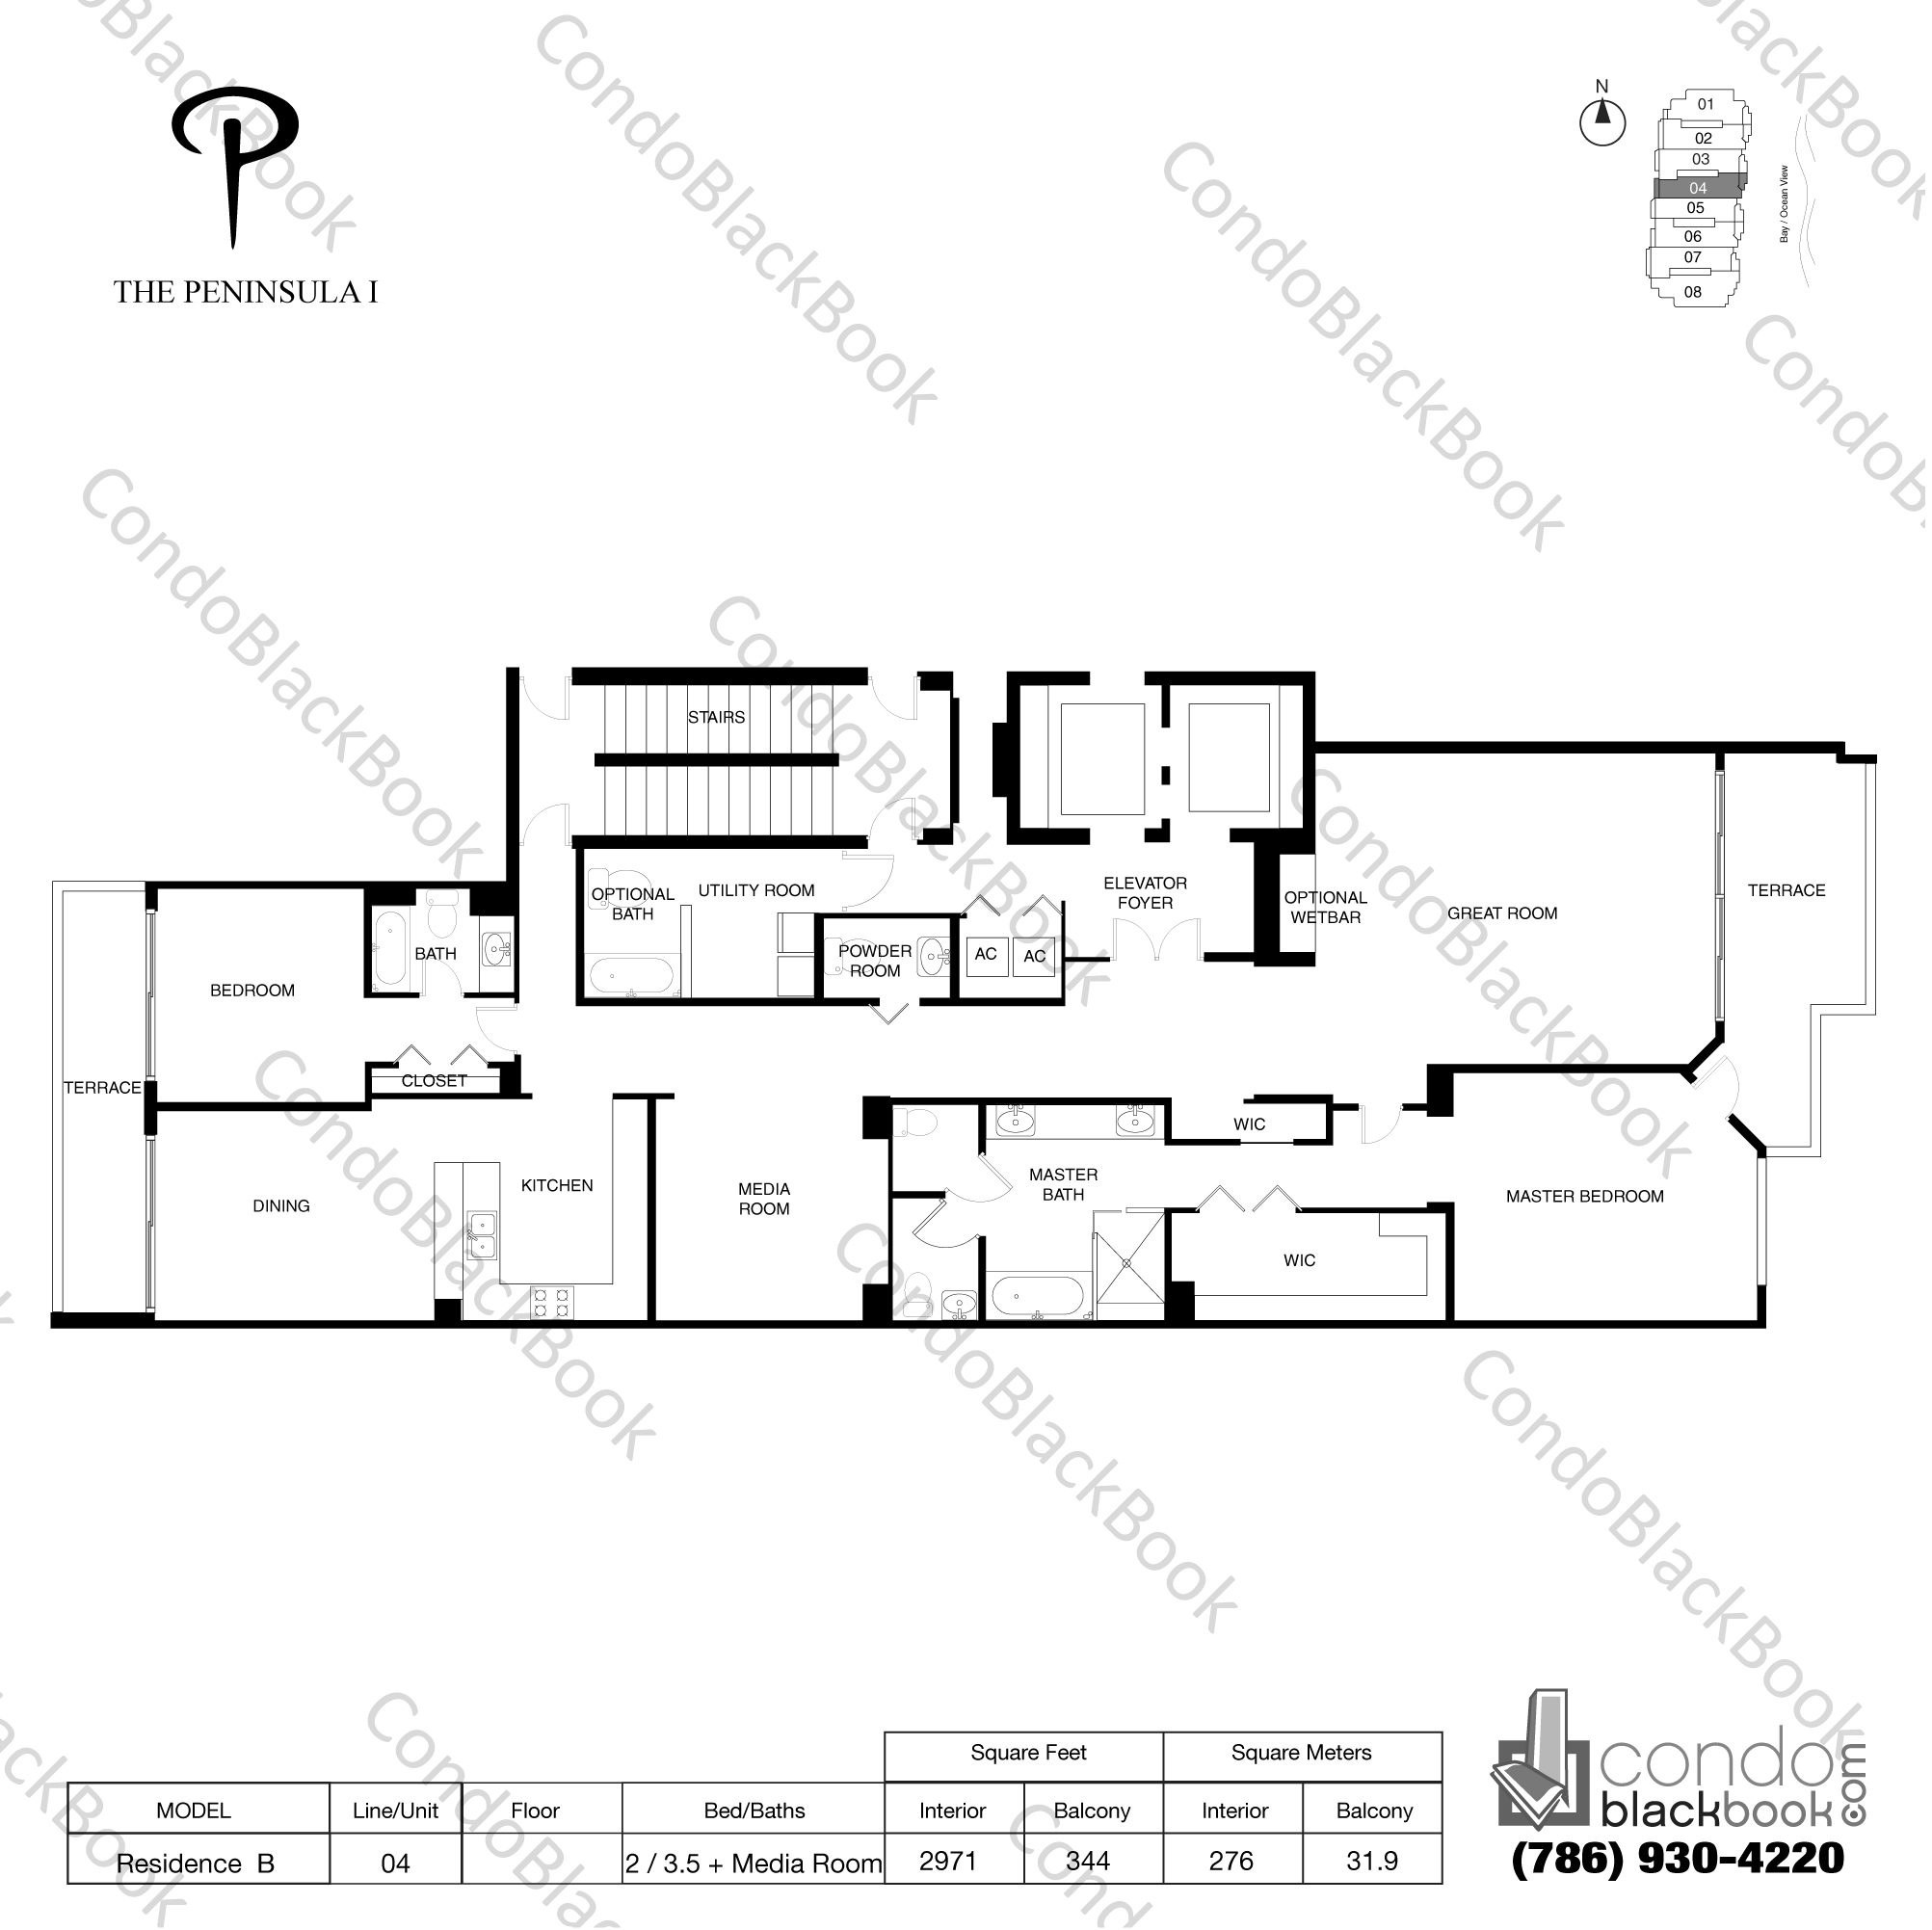 Floor plan for Peninsula Aventura, model Residence B, line 04, 2 / 3.5 + Media room bedrooms, 2971 sq ft